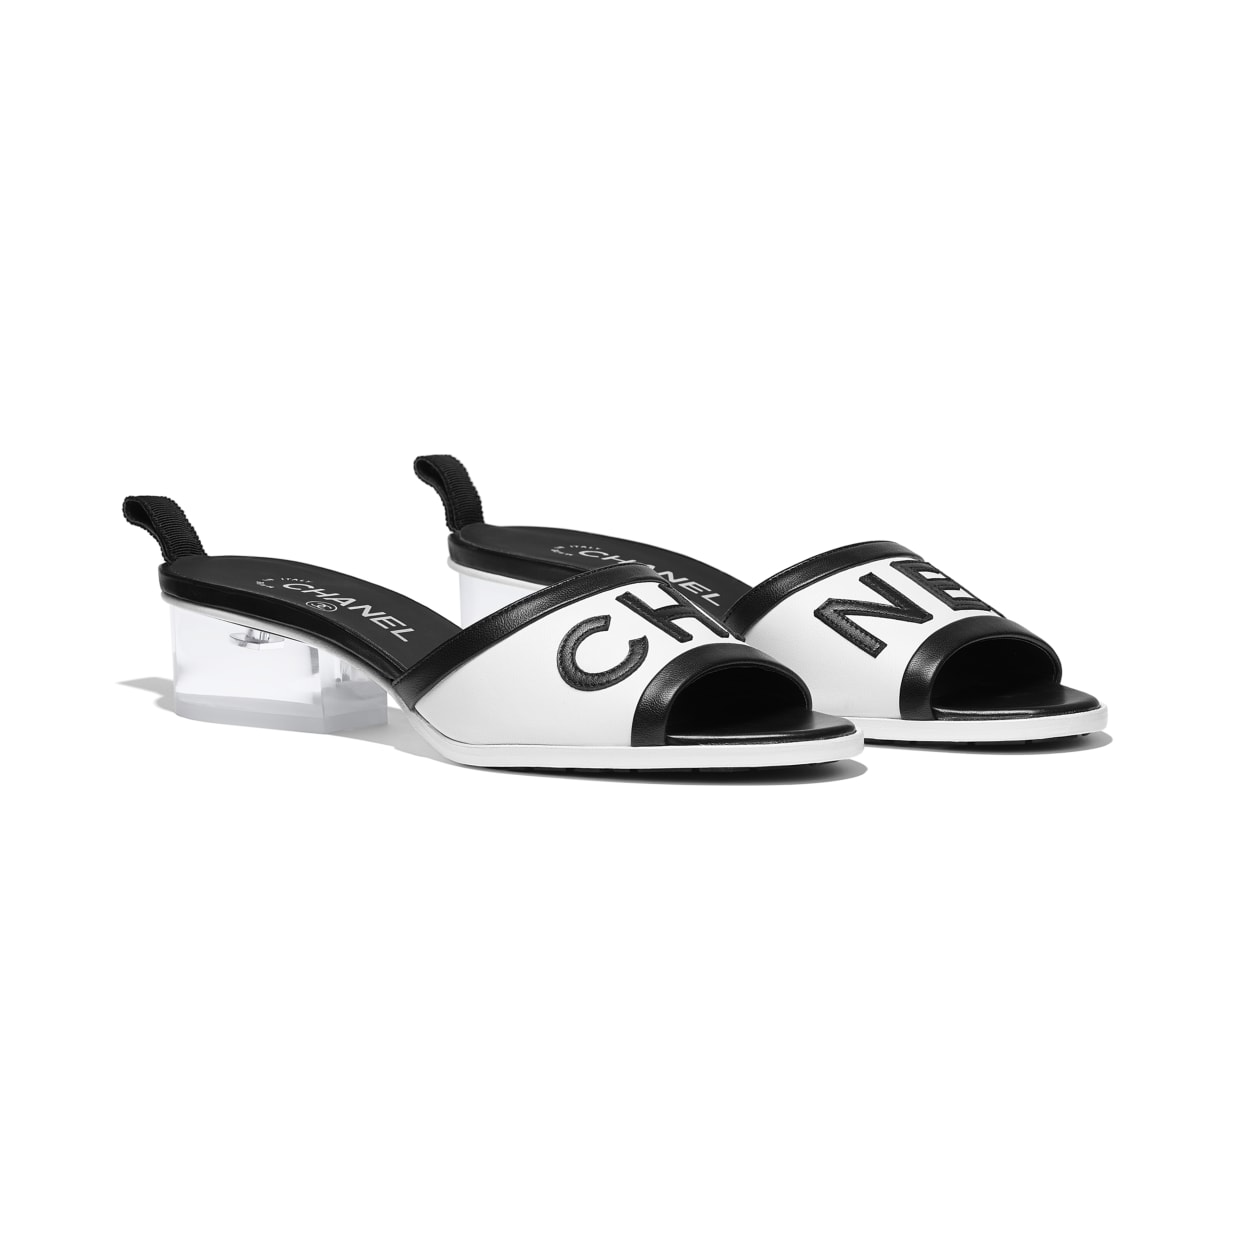 Chanel Mules 2019 Shop Clothing Shoes Online